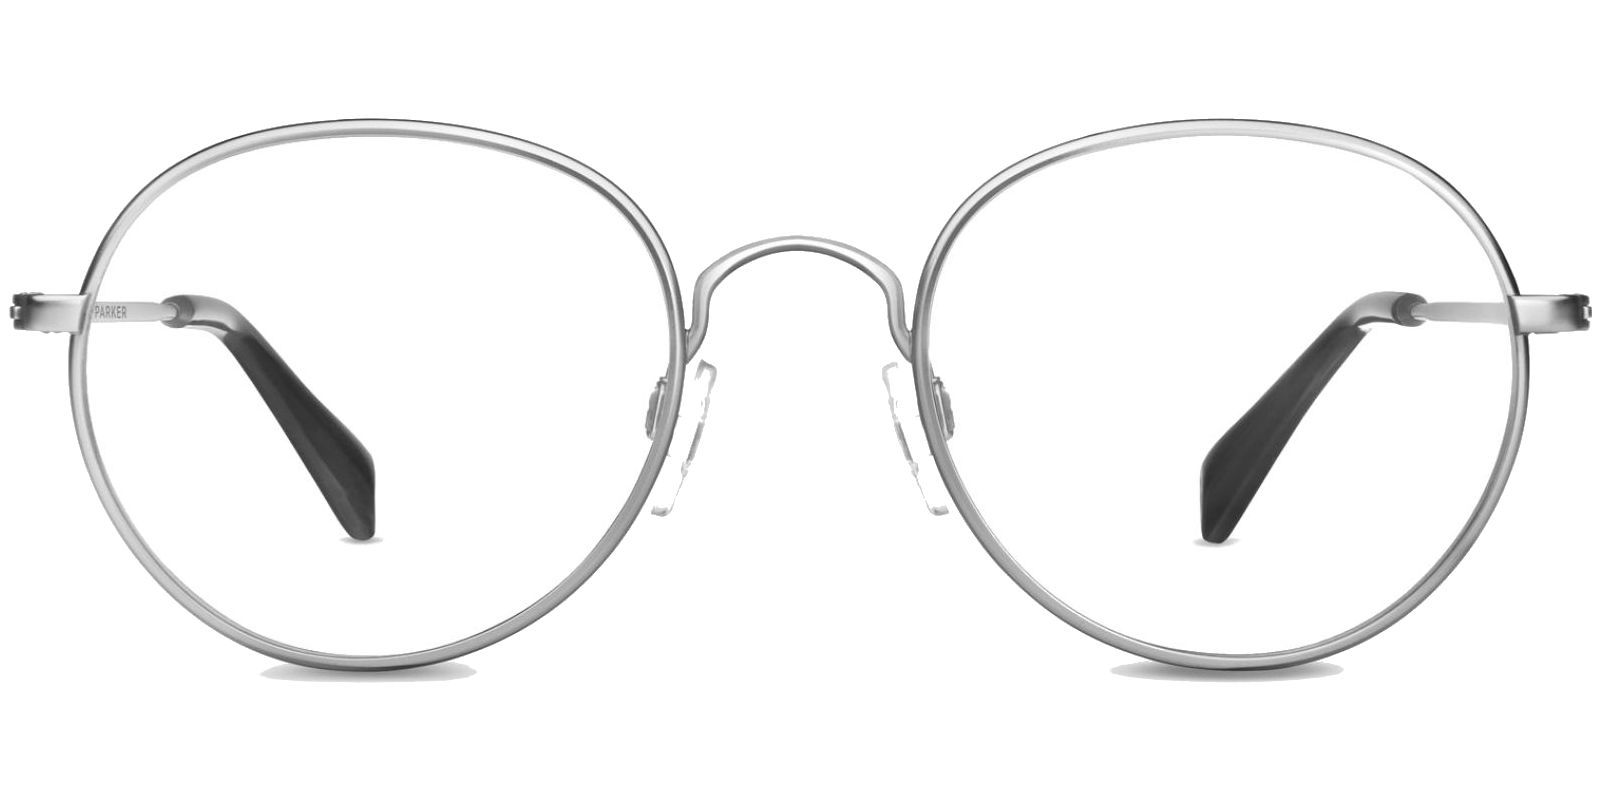 70s inspired metal frames